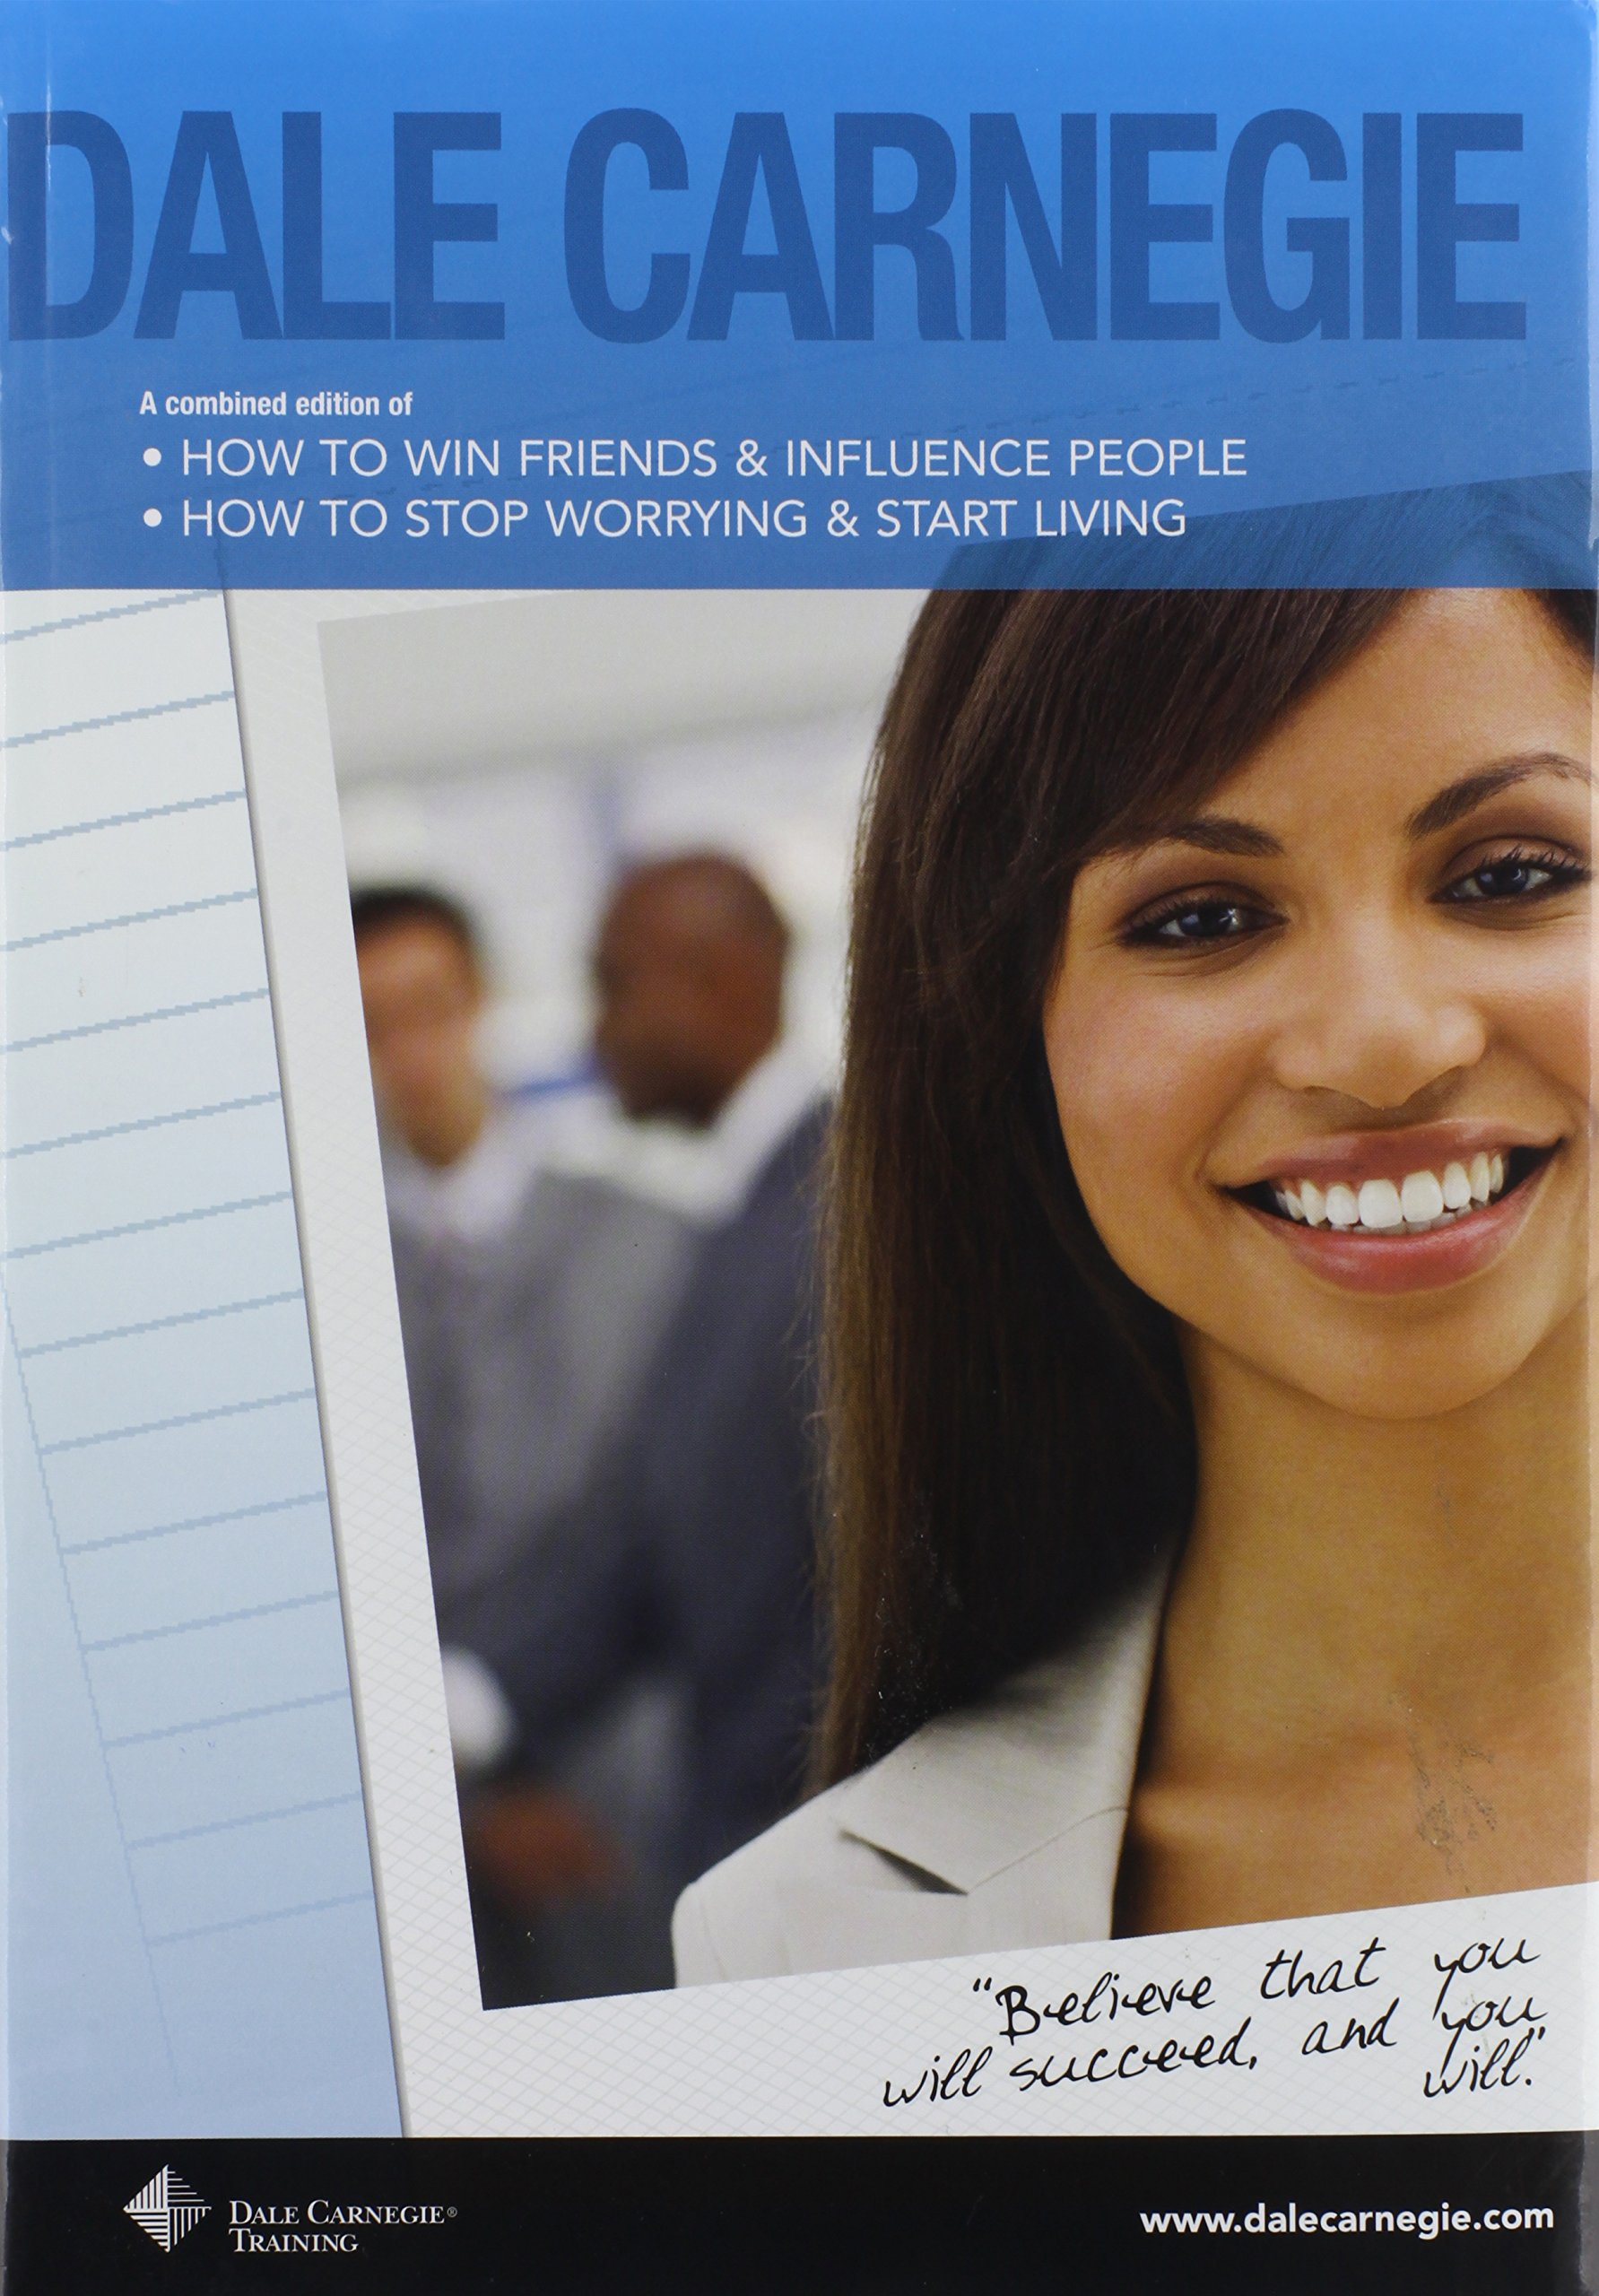 Dale Carnegie: A Combined Edition of How to Win Friends & Influence People  and How to Stop Worrying & Start Living: Dale Carnegie: Amazon.com: Books